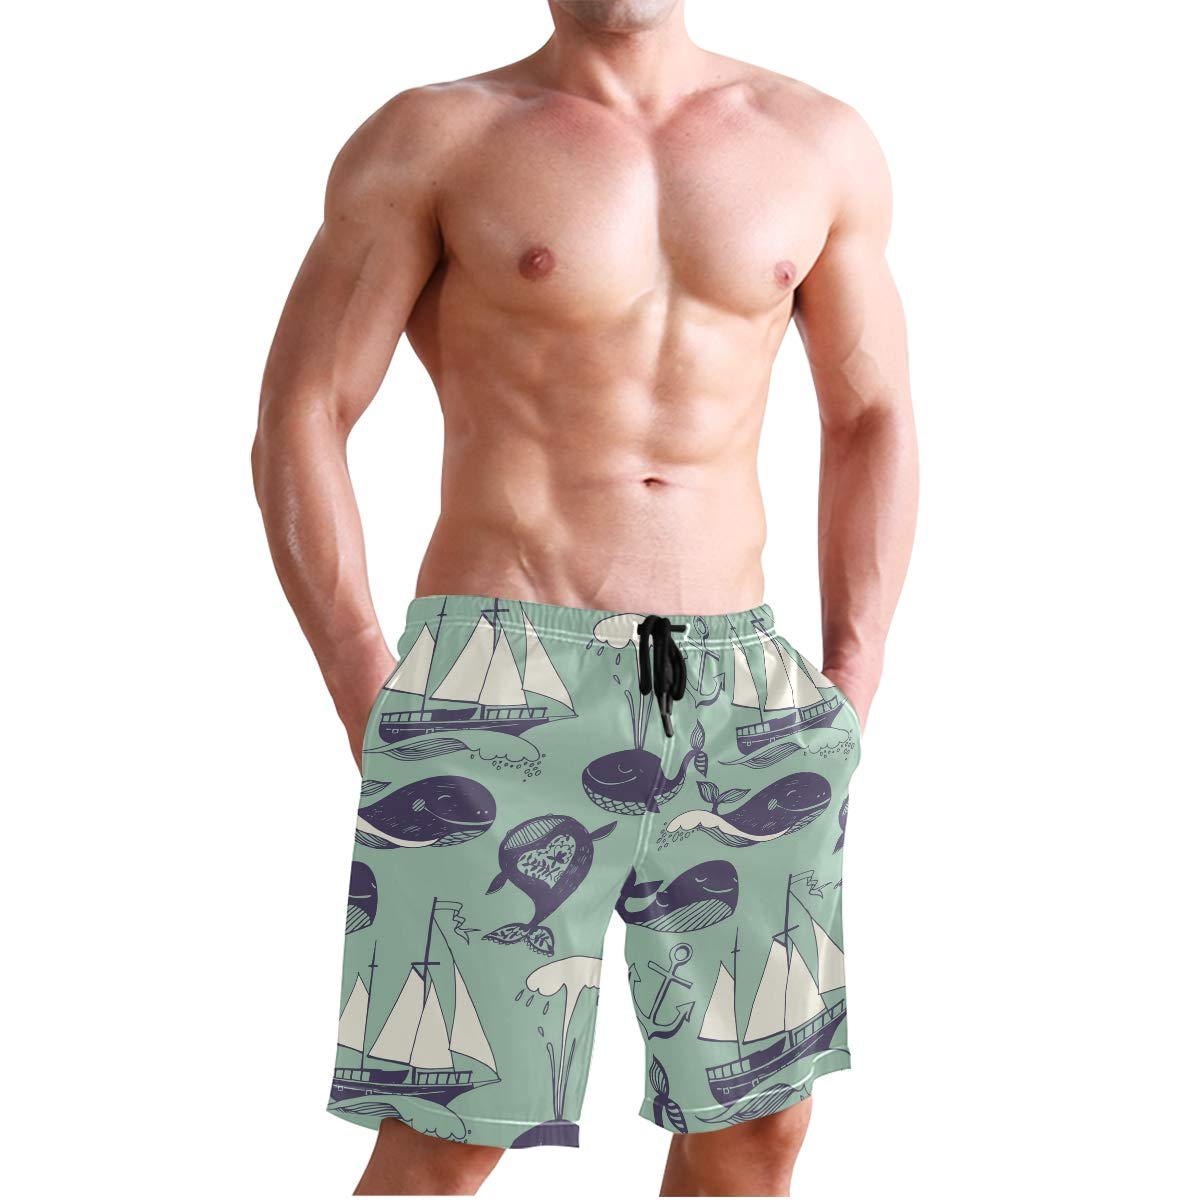 JERECY Mens Swim Trunks Vintage Dolphin Sailboat Anchor Quick Dry Board Shorts with Drawstring and Pockets